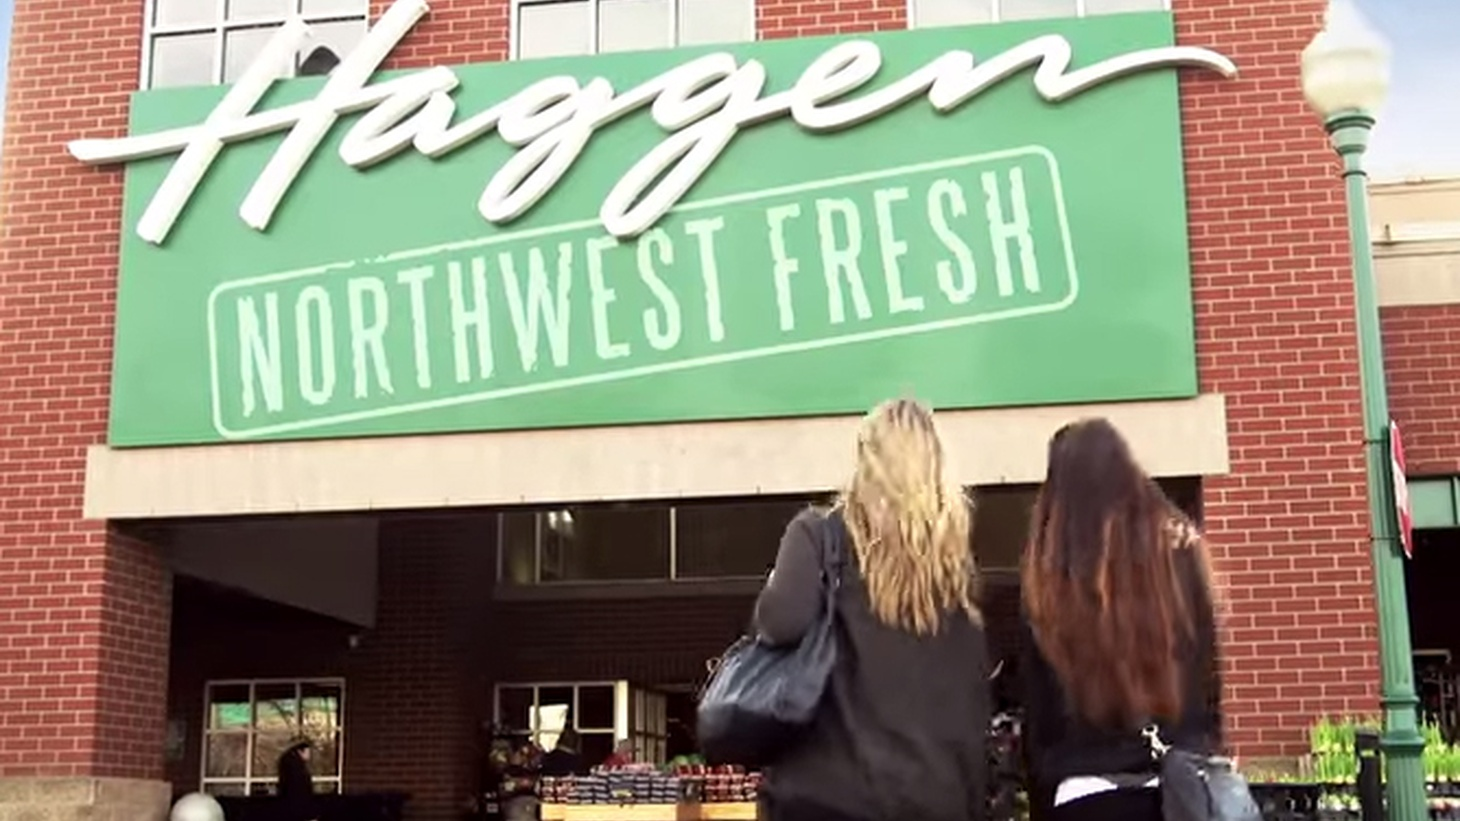 If you've never heard of Haggen Grocery stores, it could be the lack of advertising, which combined with increased prices to force Haggen into bankruptcy right after it bought up 83 supermarkets in California early this year. The bungled expansion plan means big trouble for thousands workers in a hyper-competitive market.